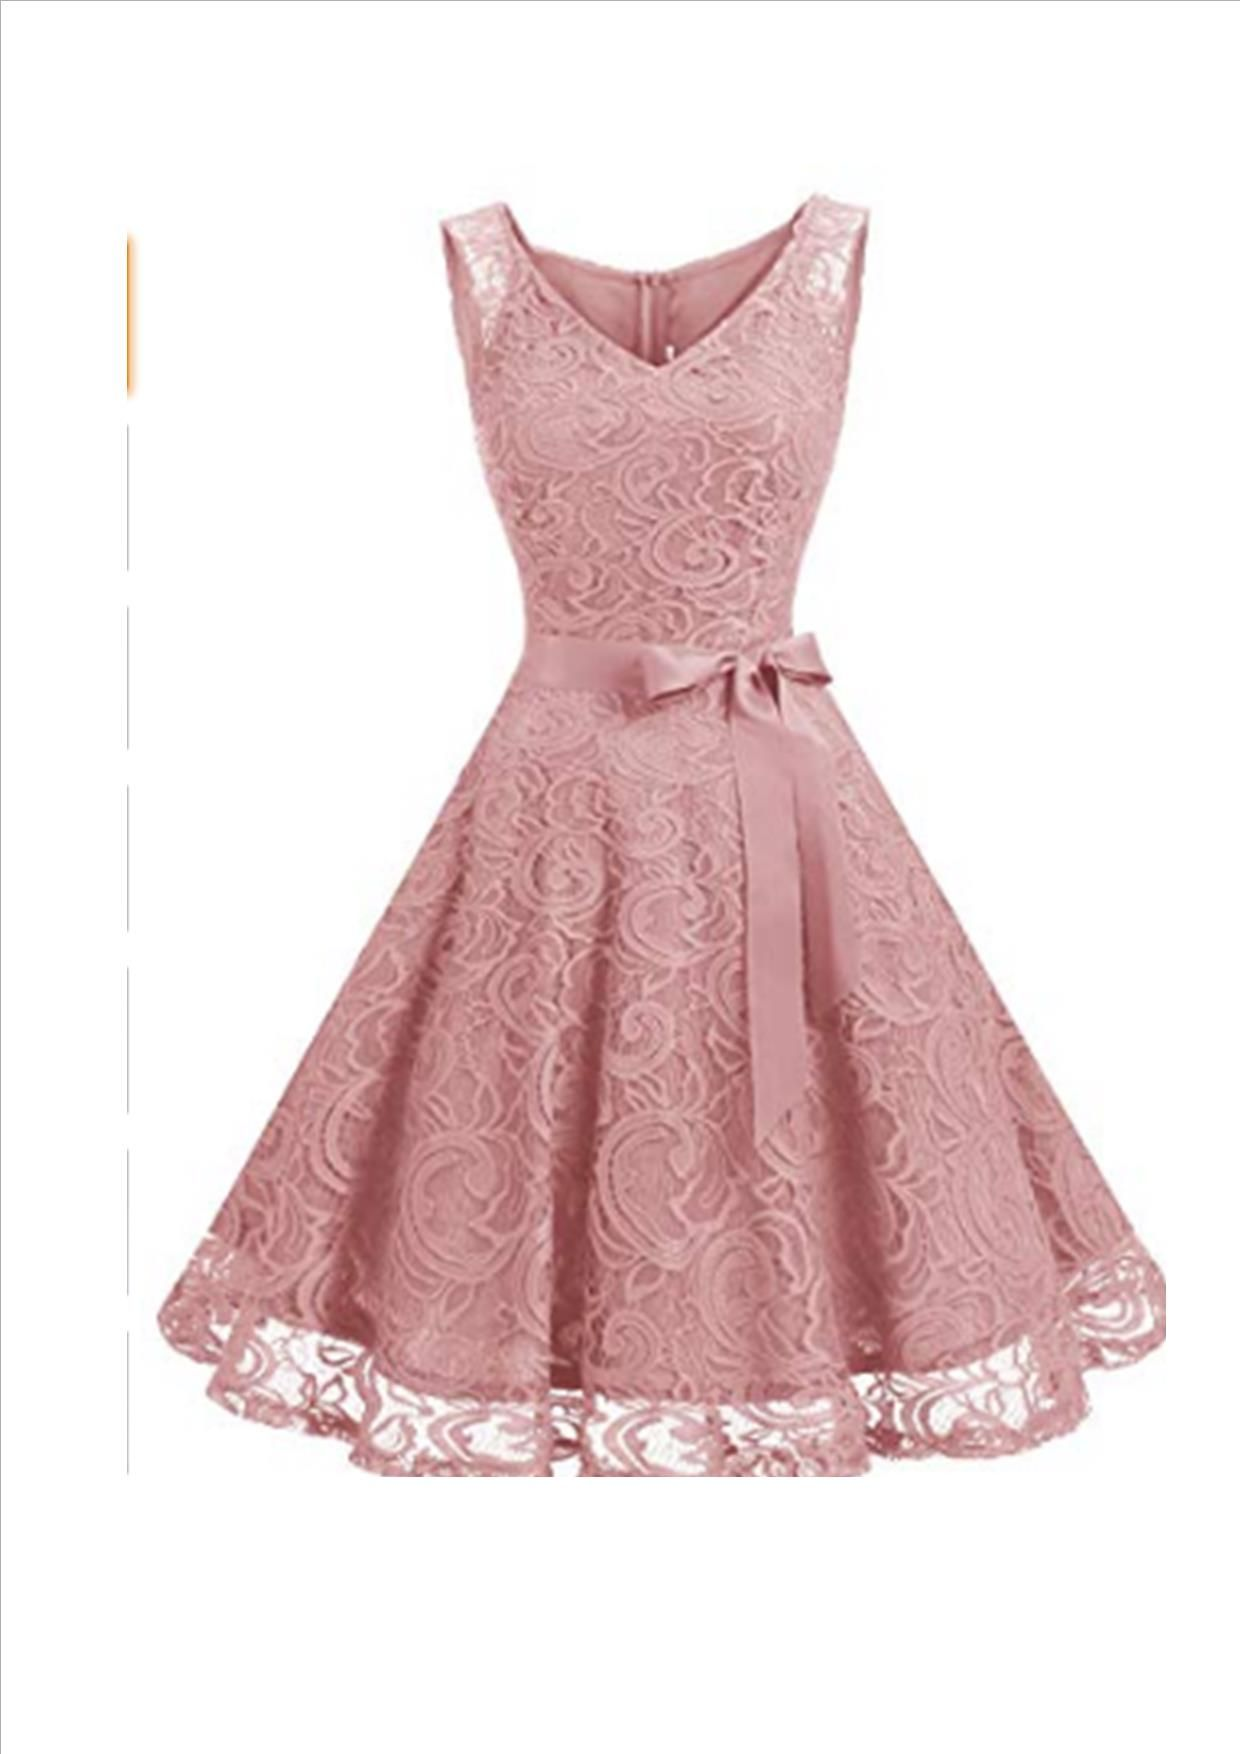 Dressystar Womens V Neck Floral Lace Bridesmaid Dress Prom Party Dress Flutter Sleeve